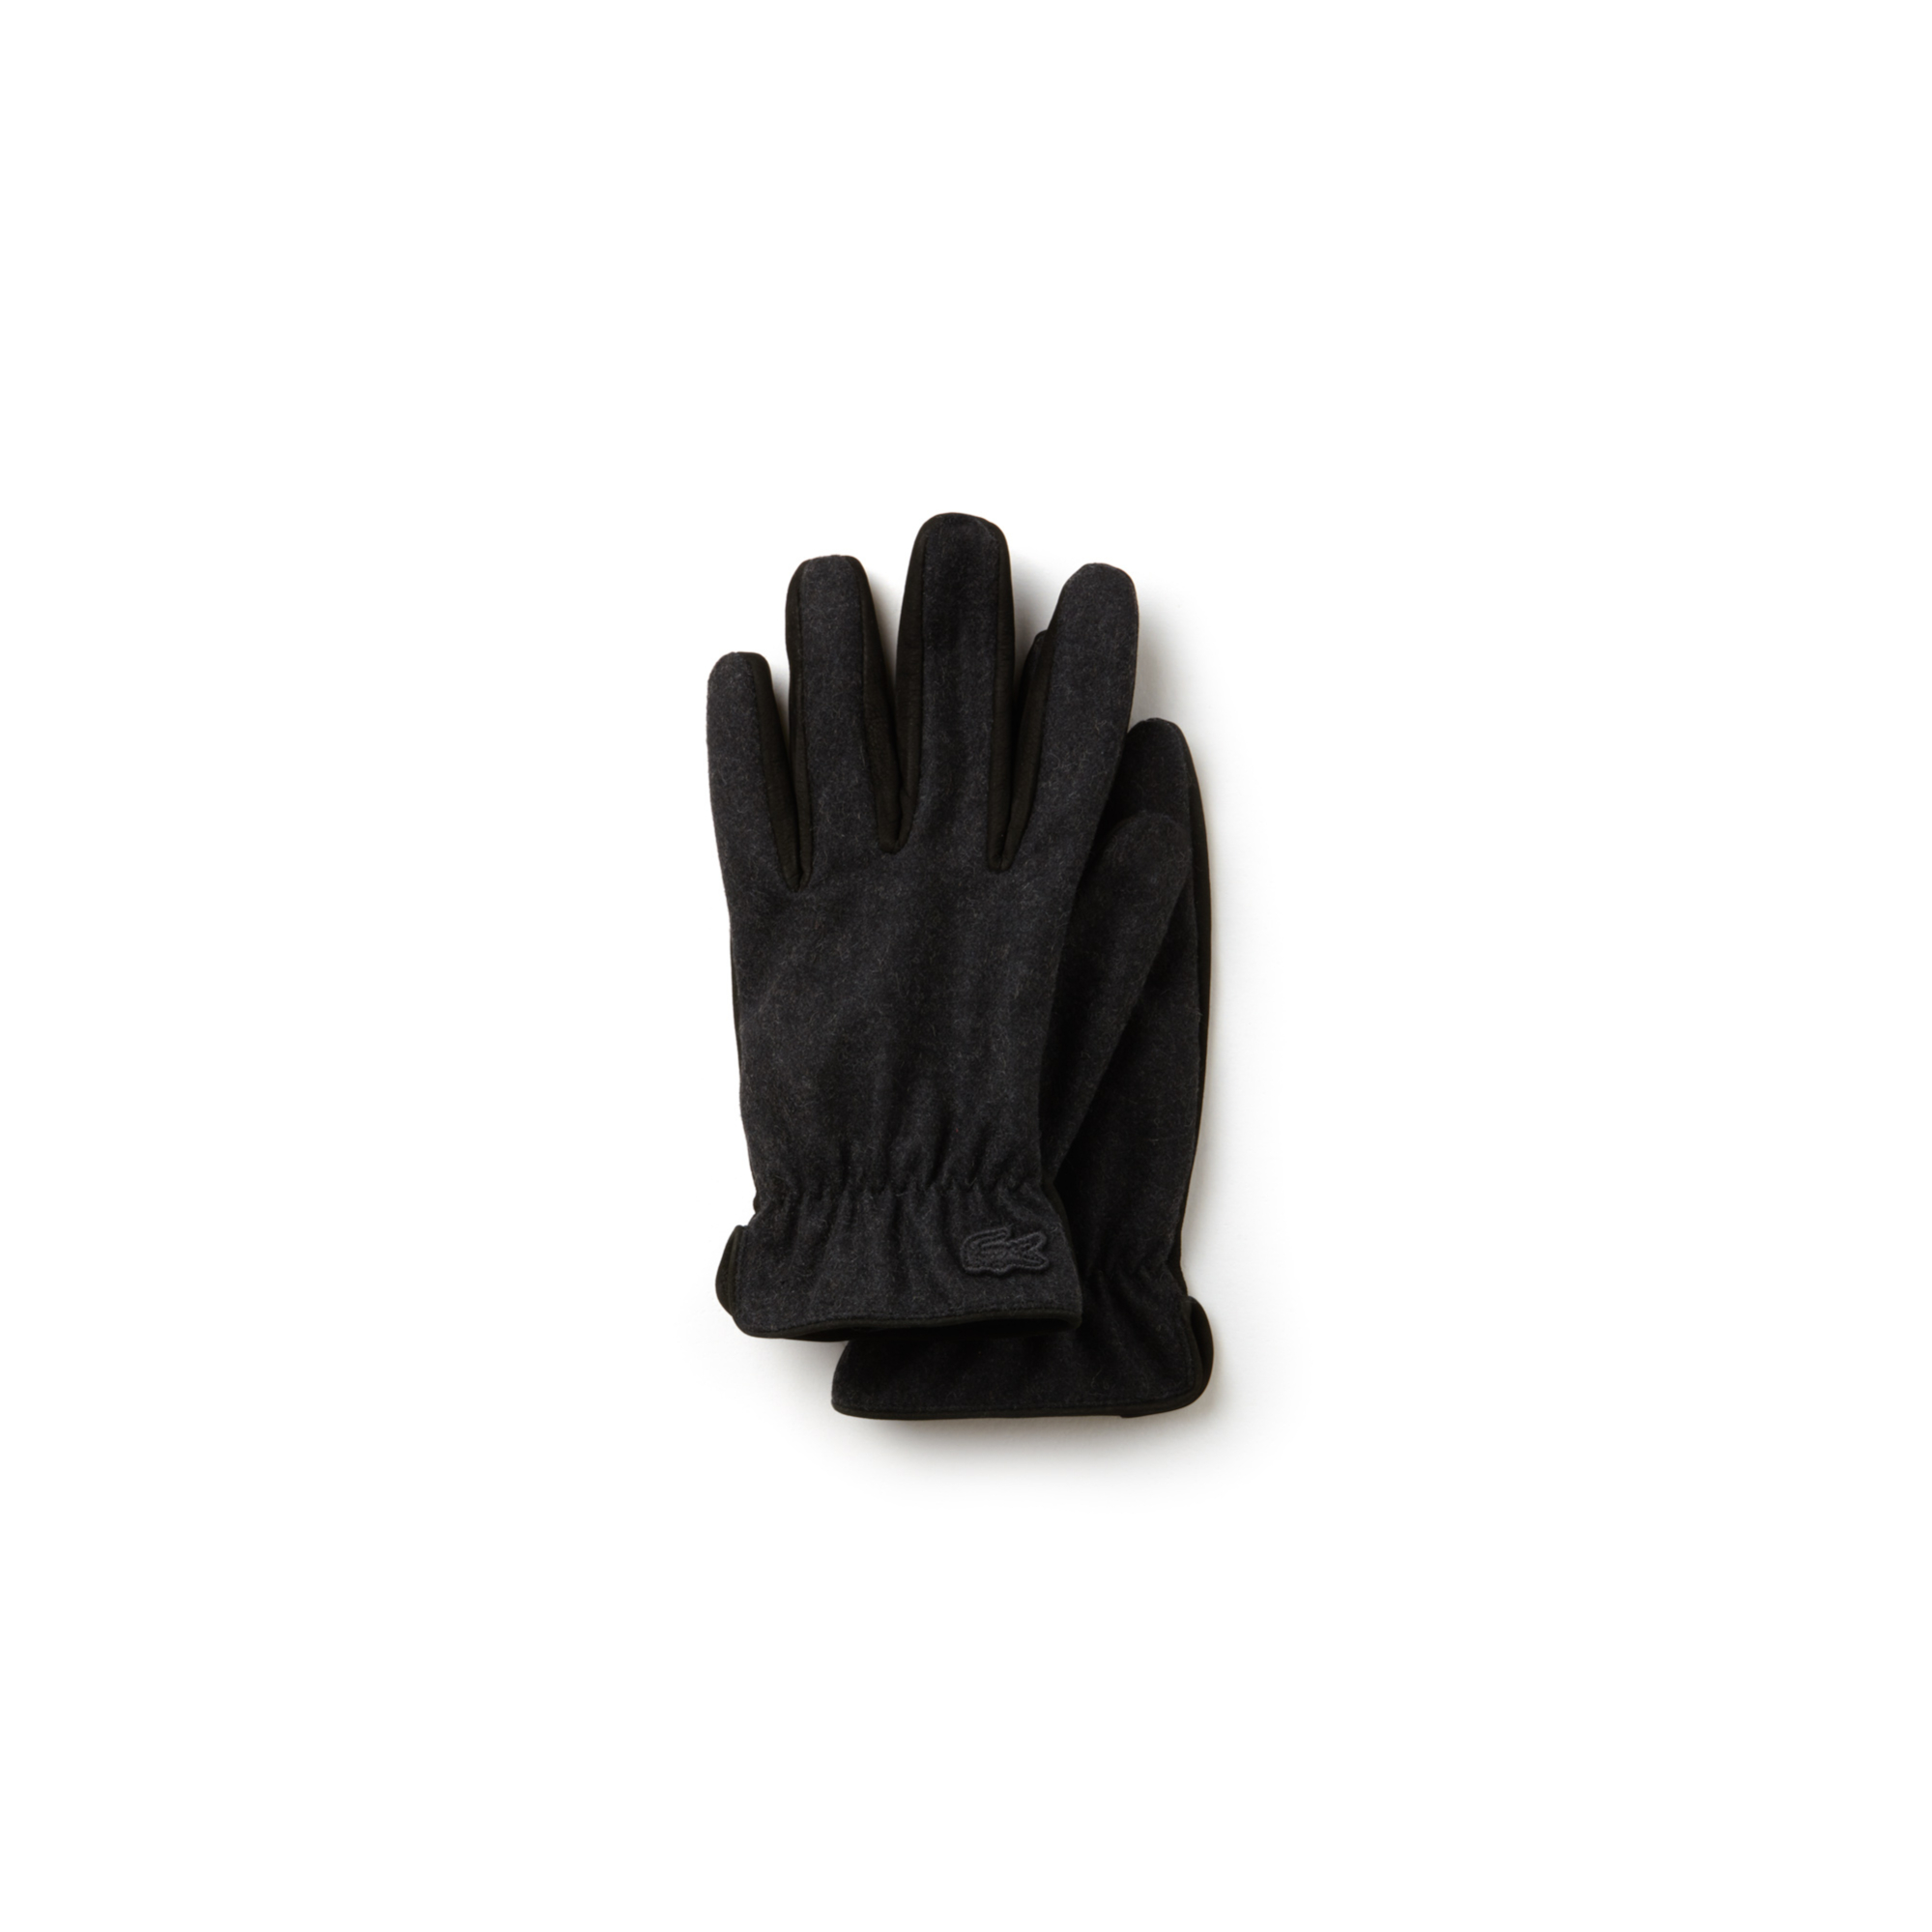 Lacoste Men's Leather Gloves